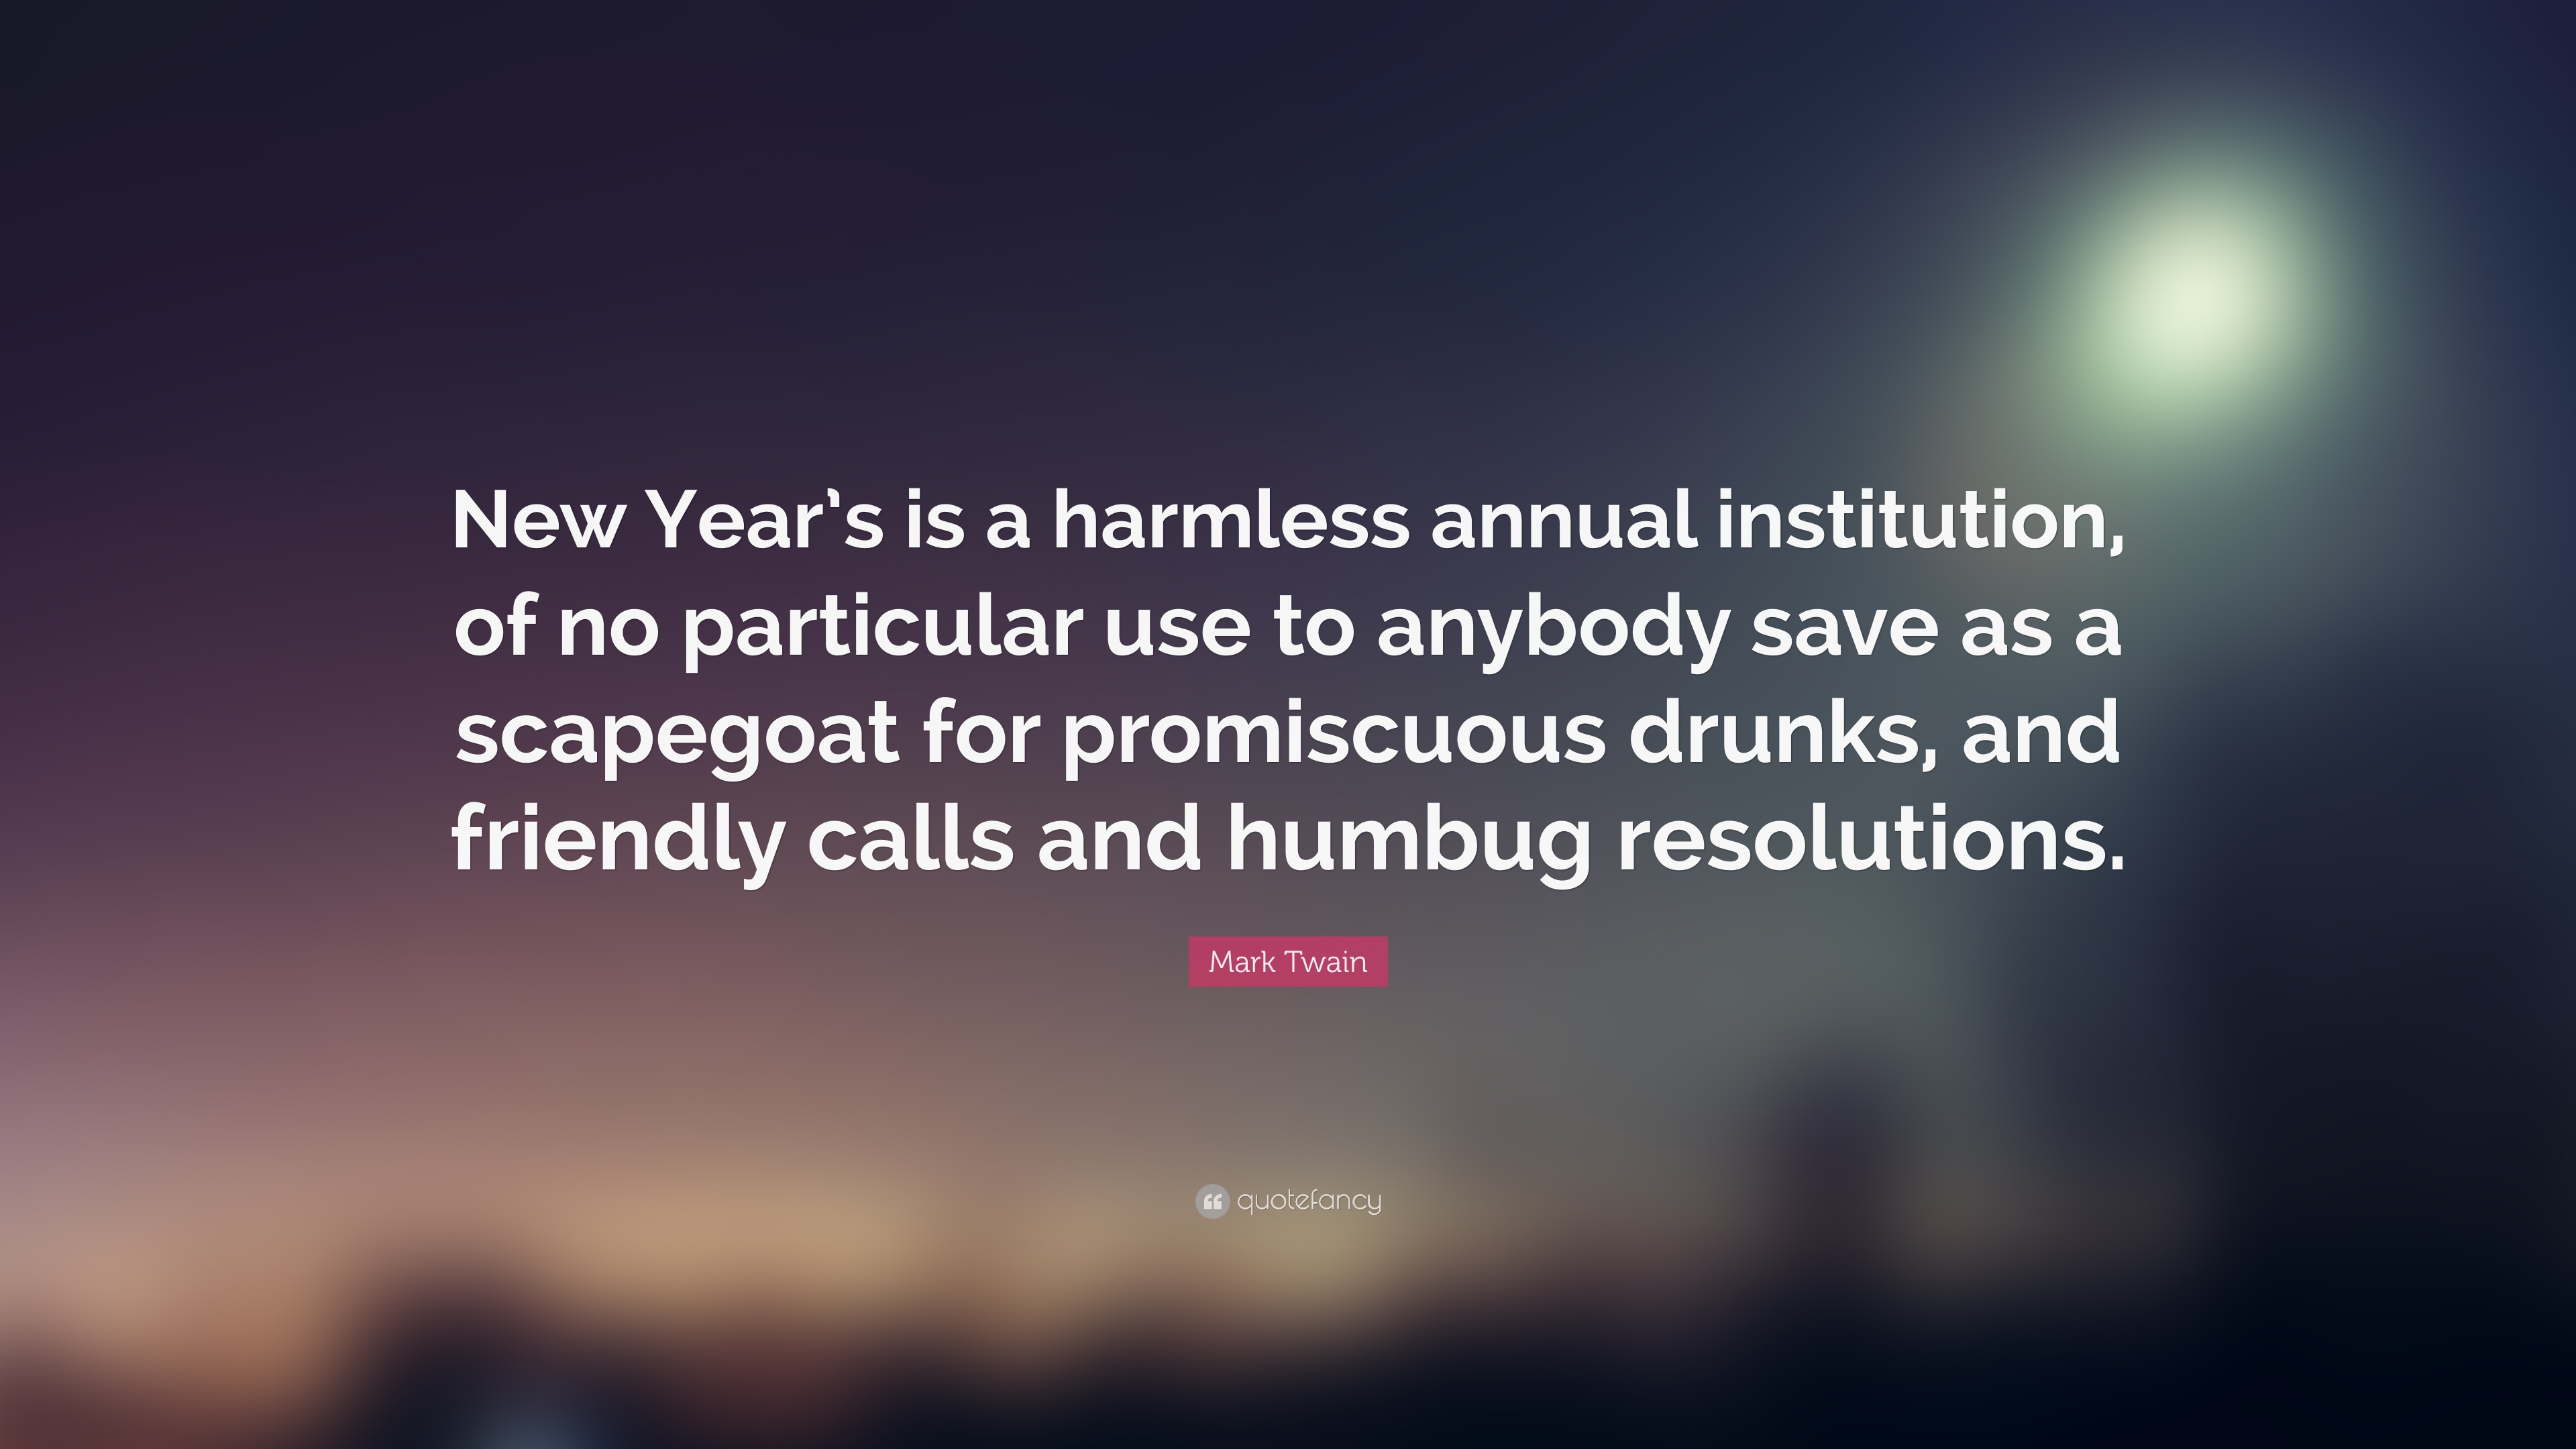 mark twain quote new years is a harmless annual institution of no particular